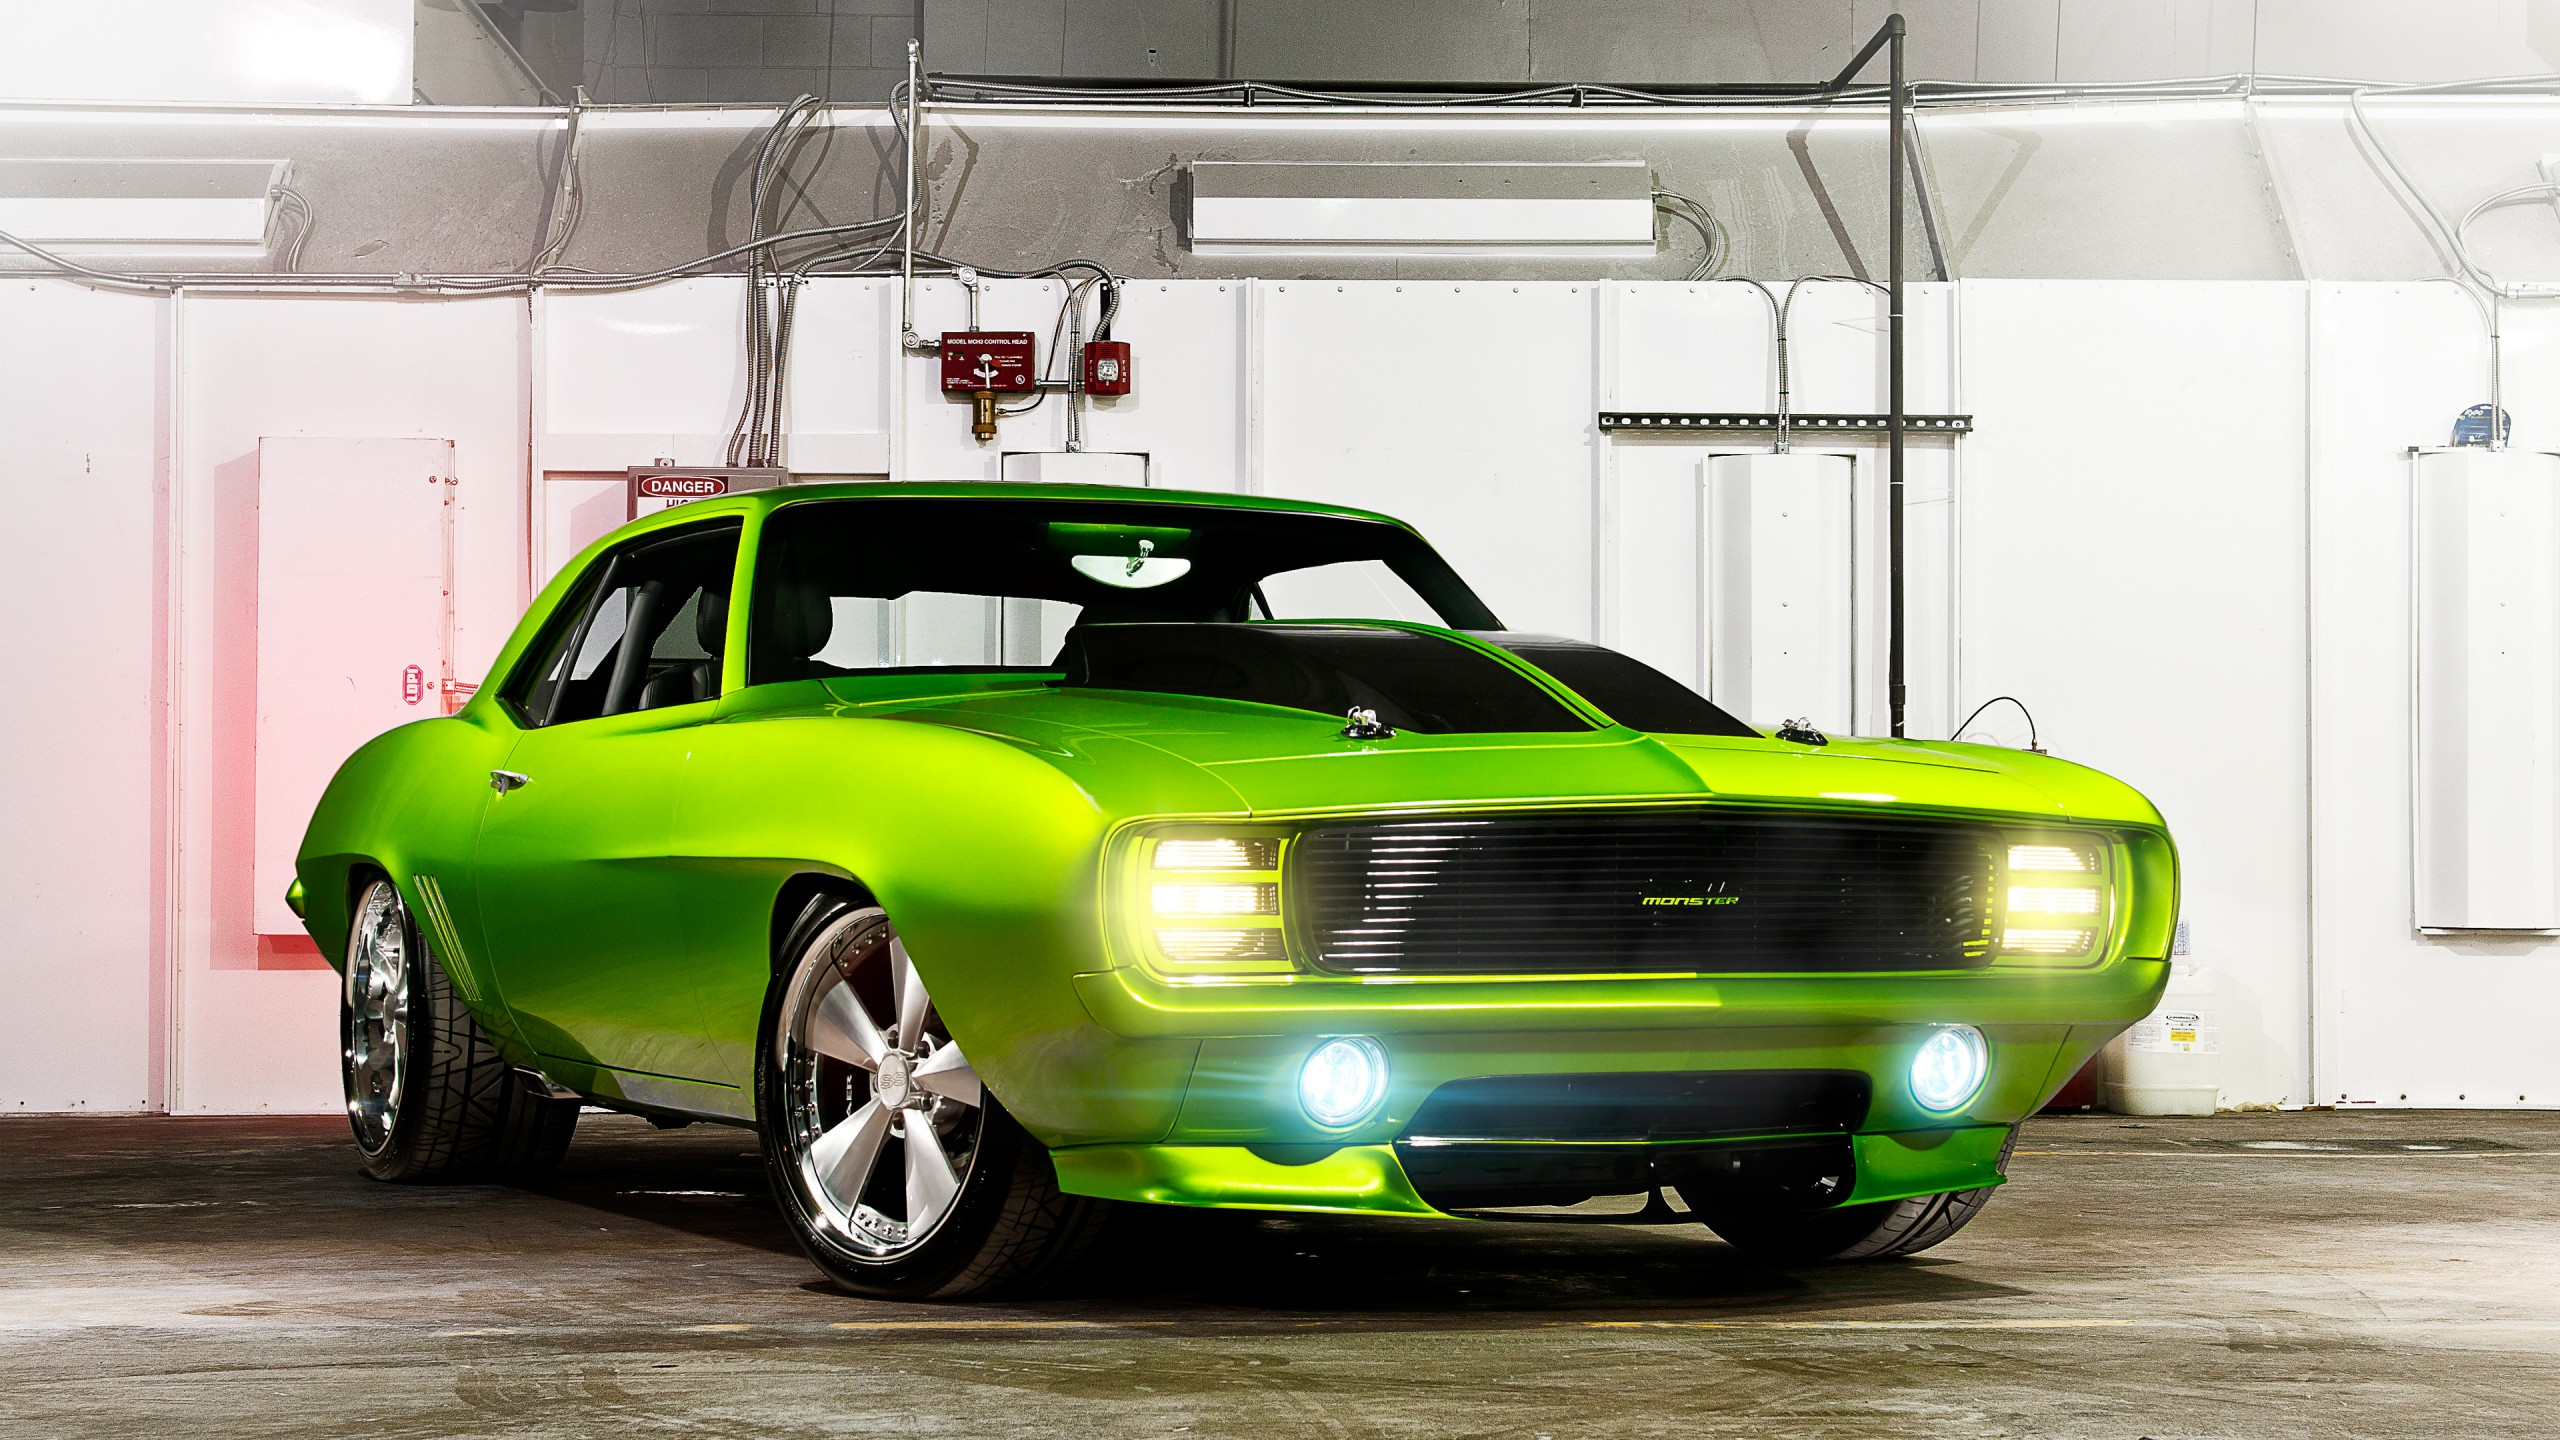 Chevy Muscle Car Wallpaper: 1969 Chevy Camaro Monster Wallpaper